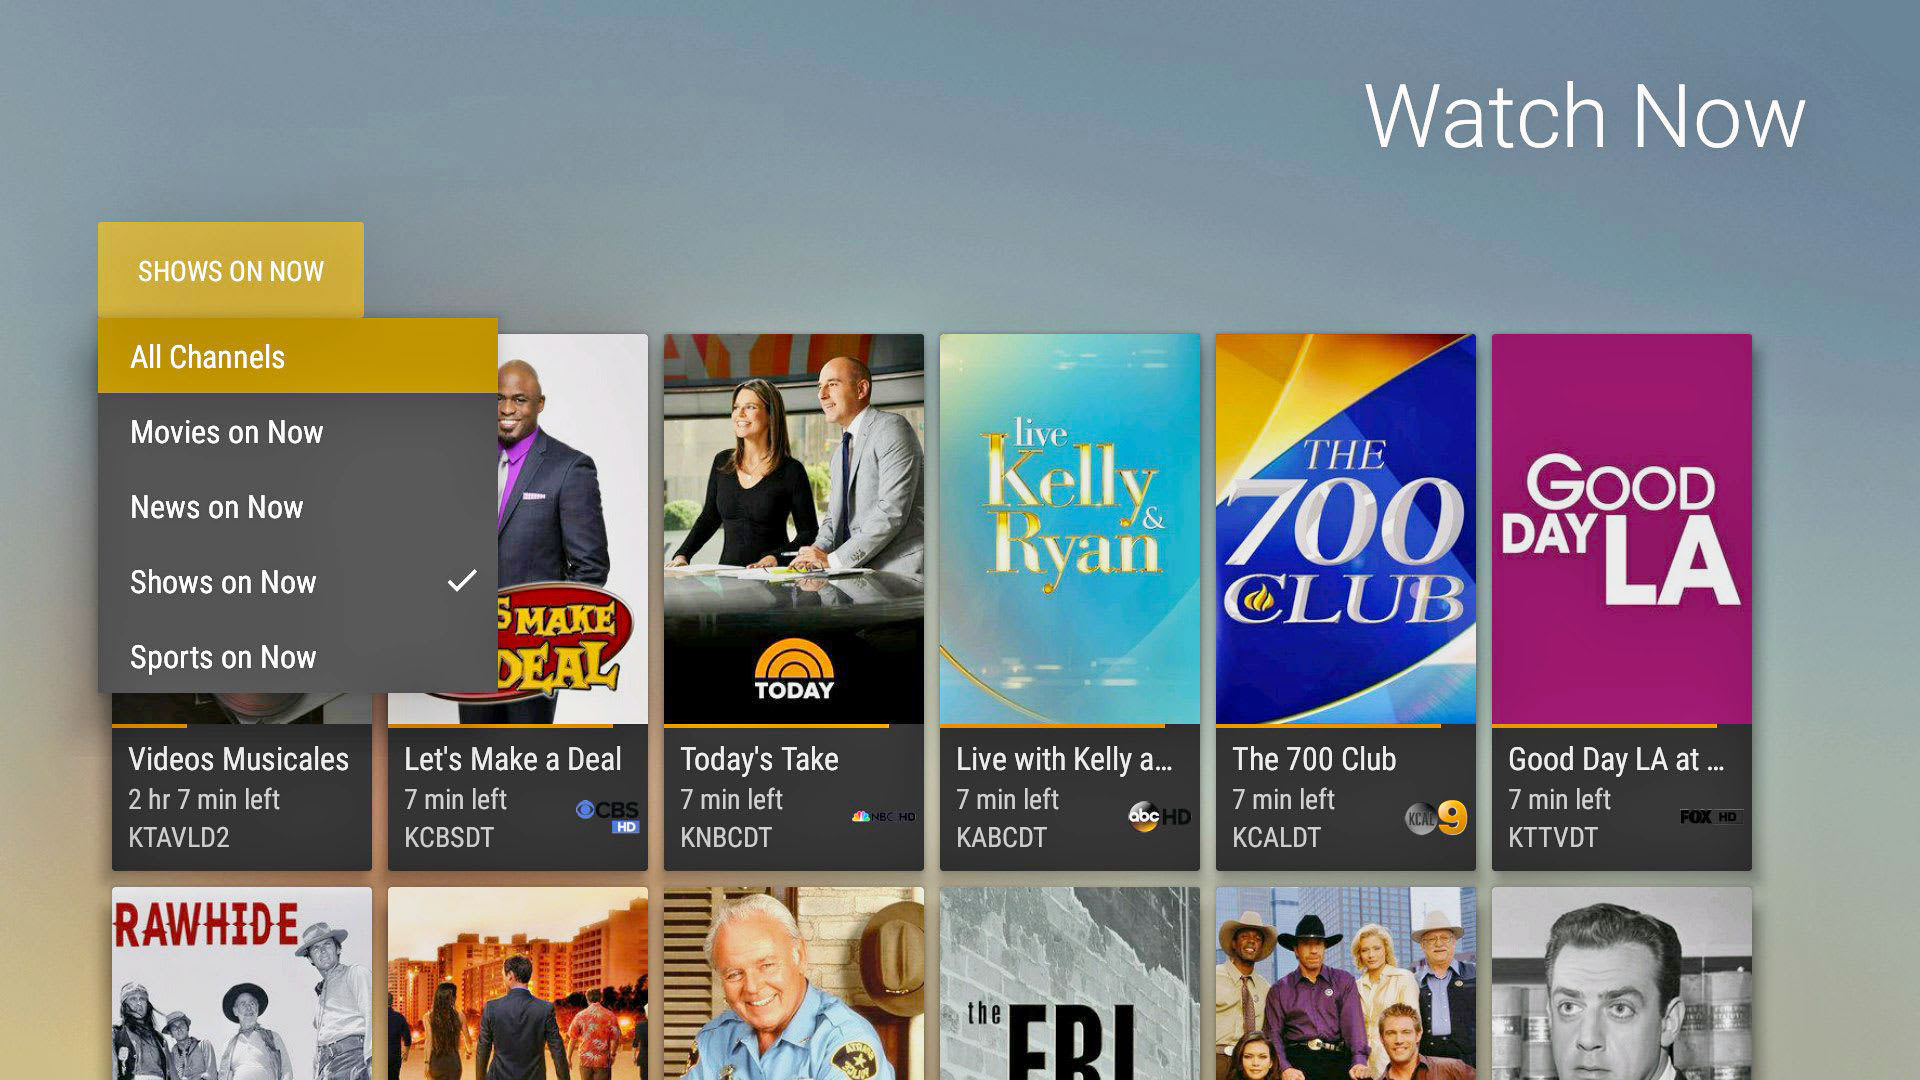 Plex Live TV and DVR launches for subscribers